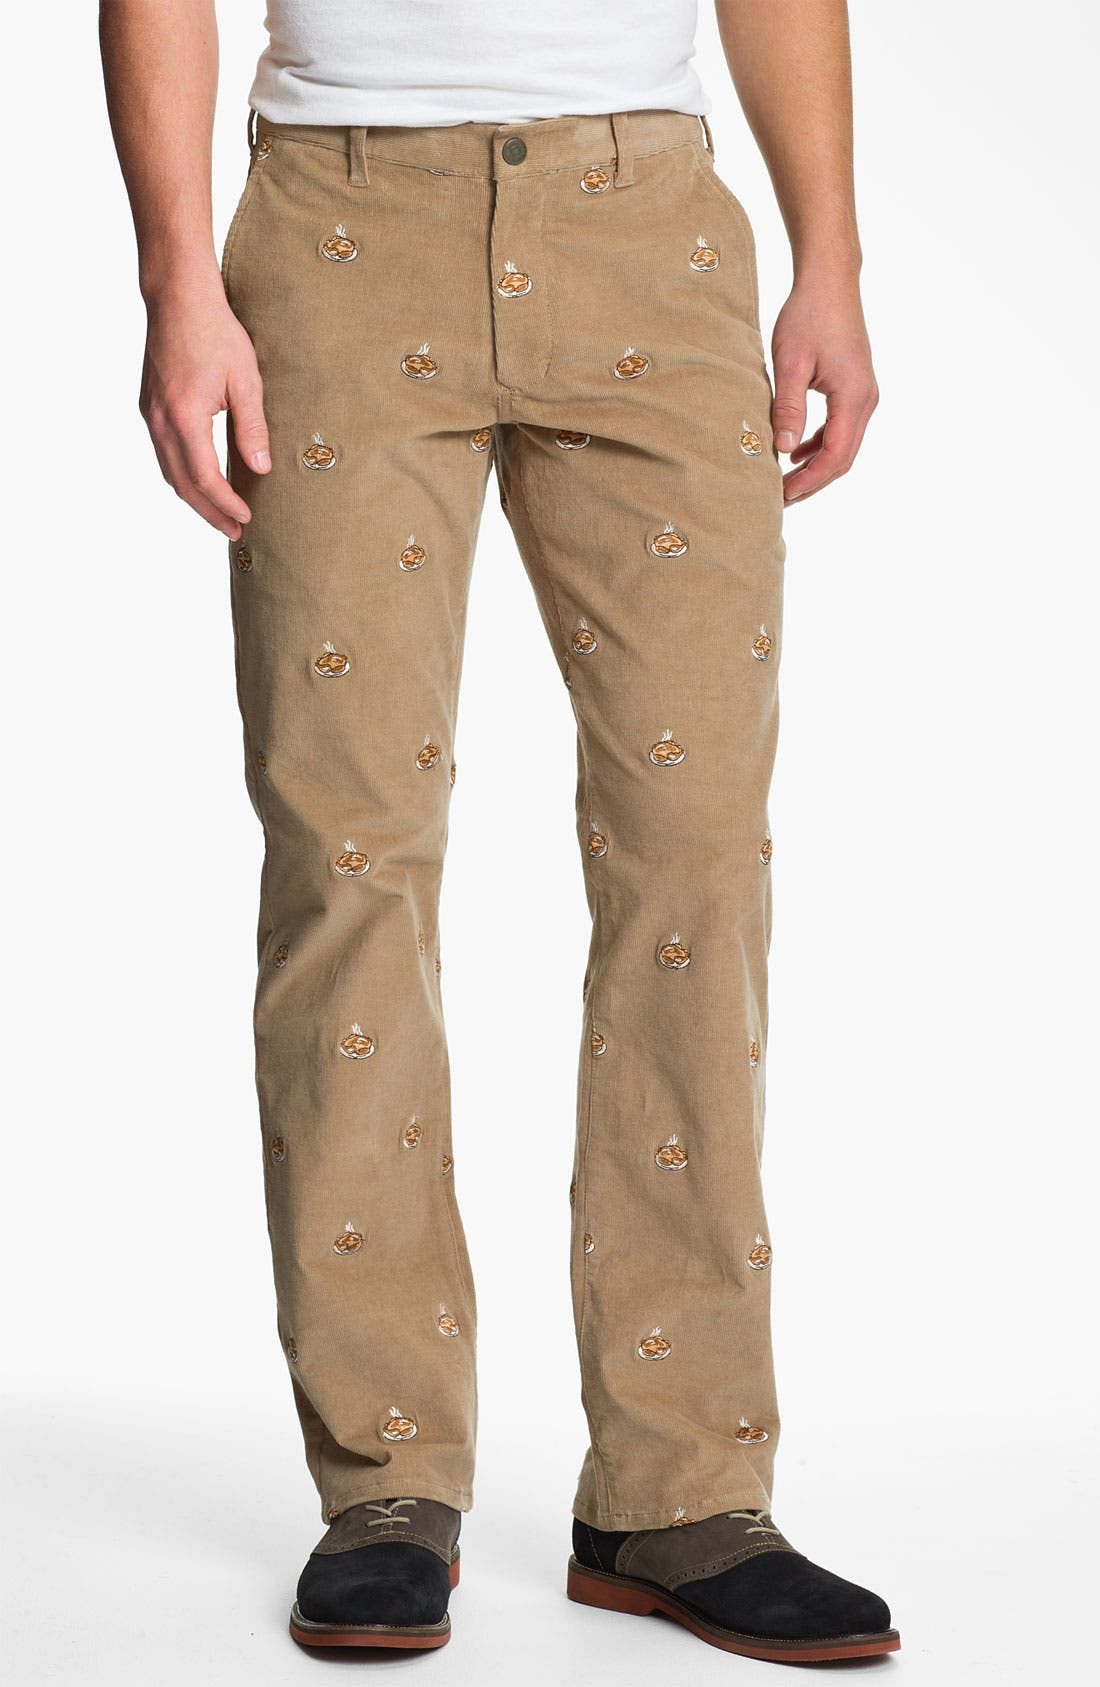 BONOBOS,                             'Cooked Turkeys' Corduroy Pants,                             Main thumbnail 1, color,                             250